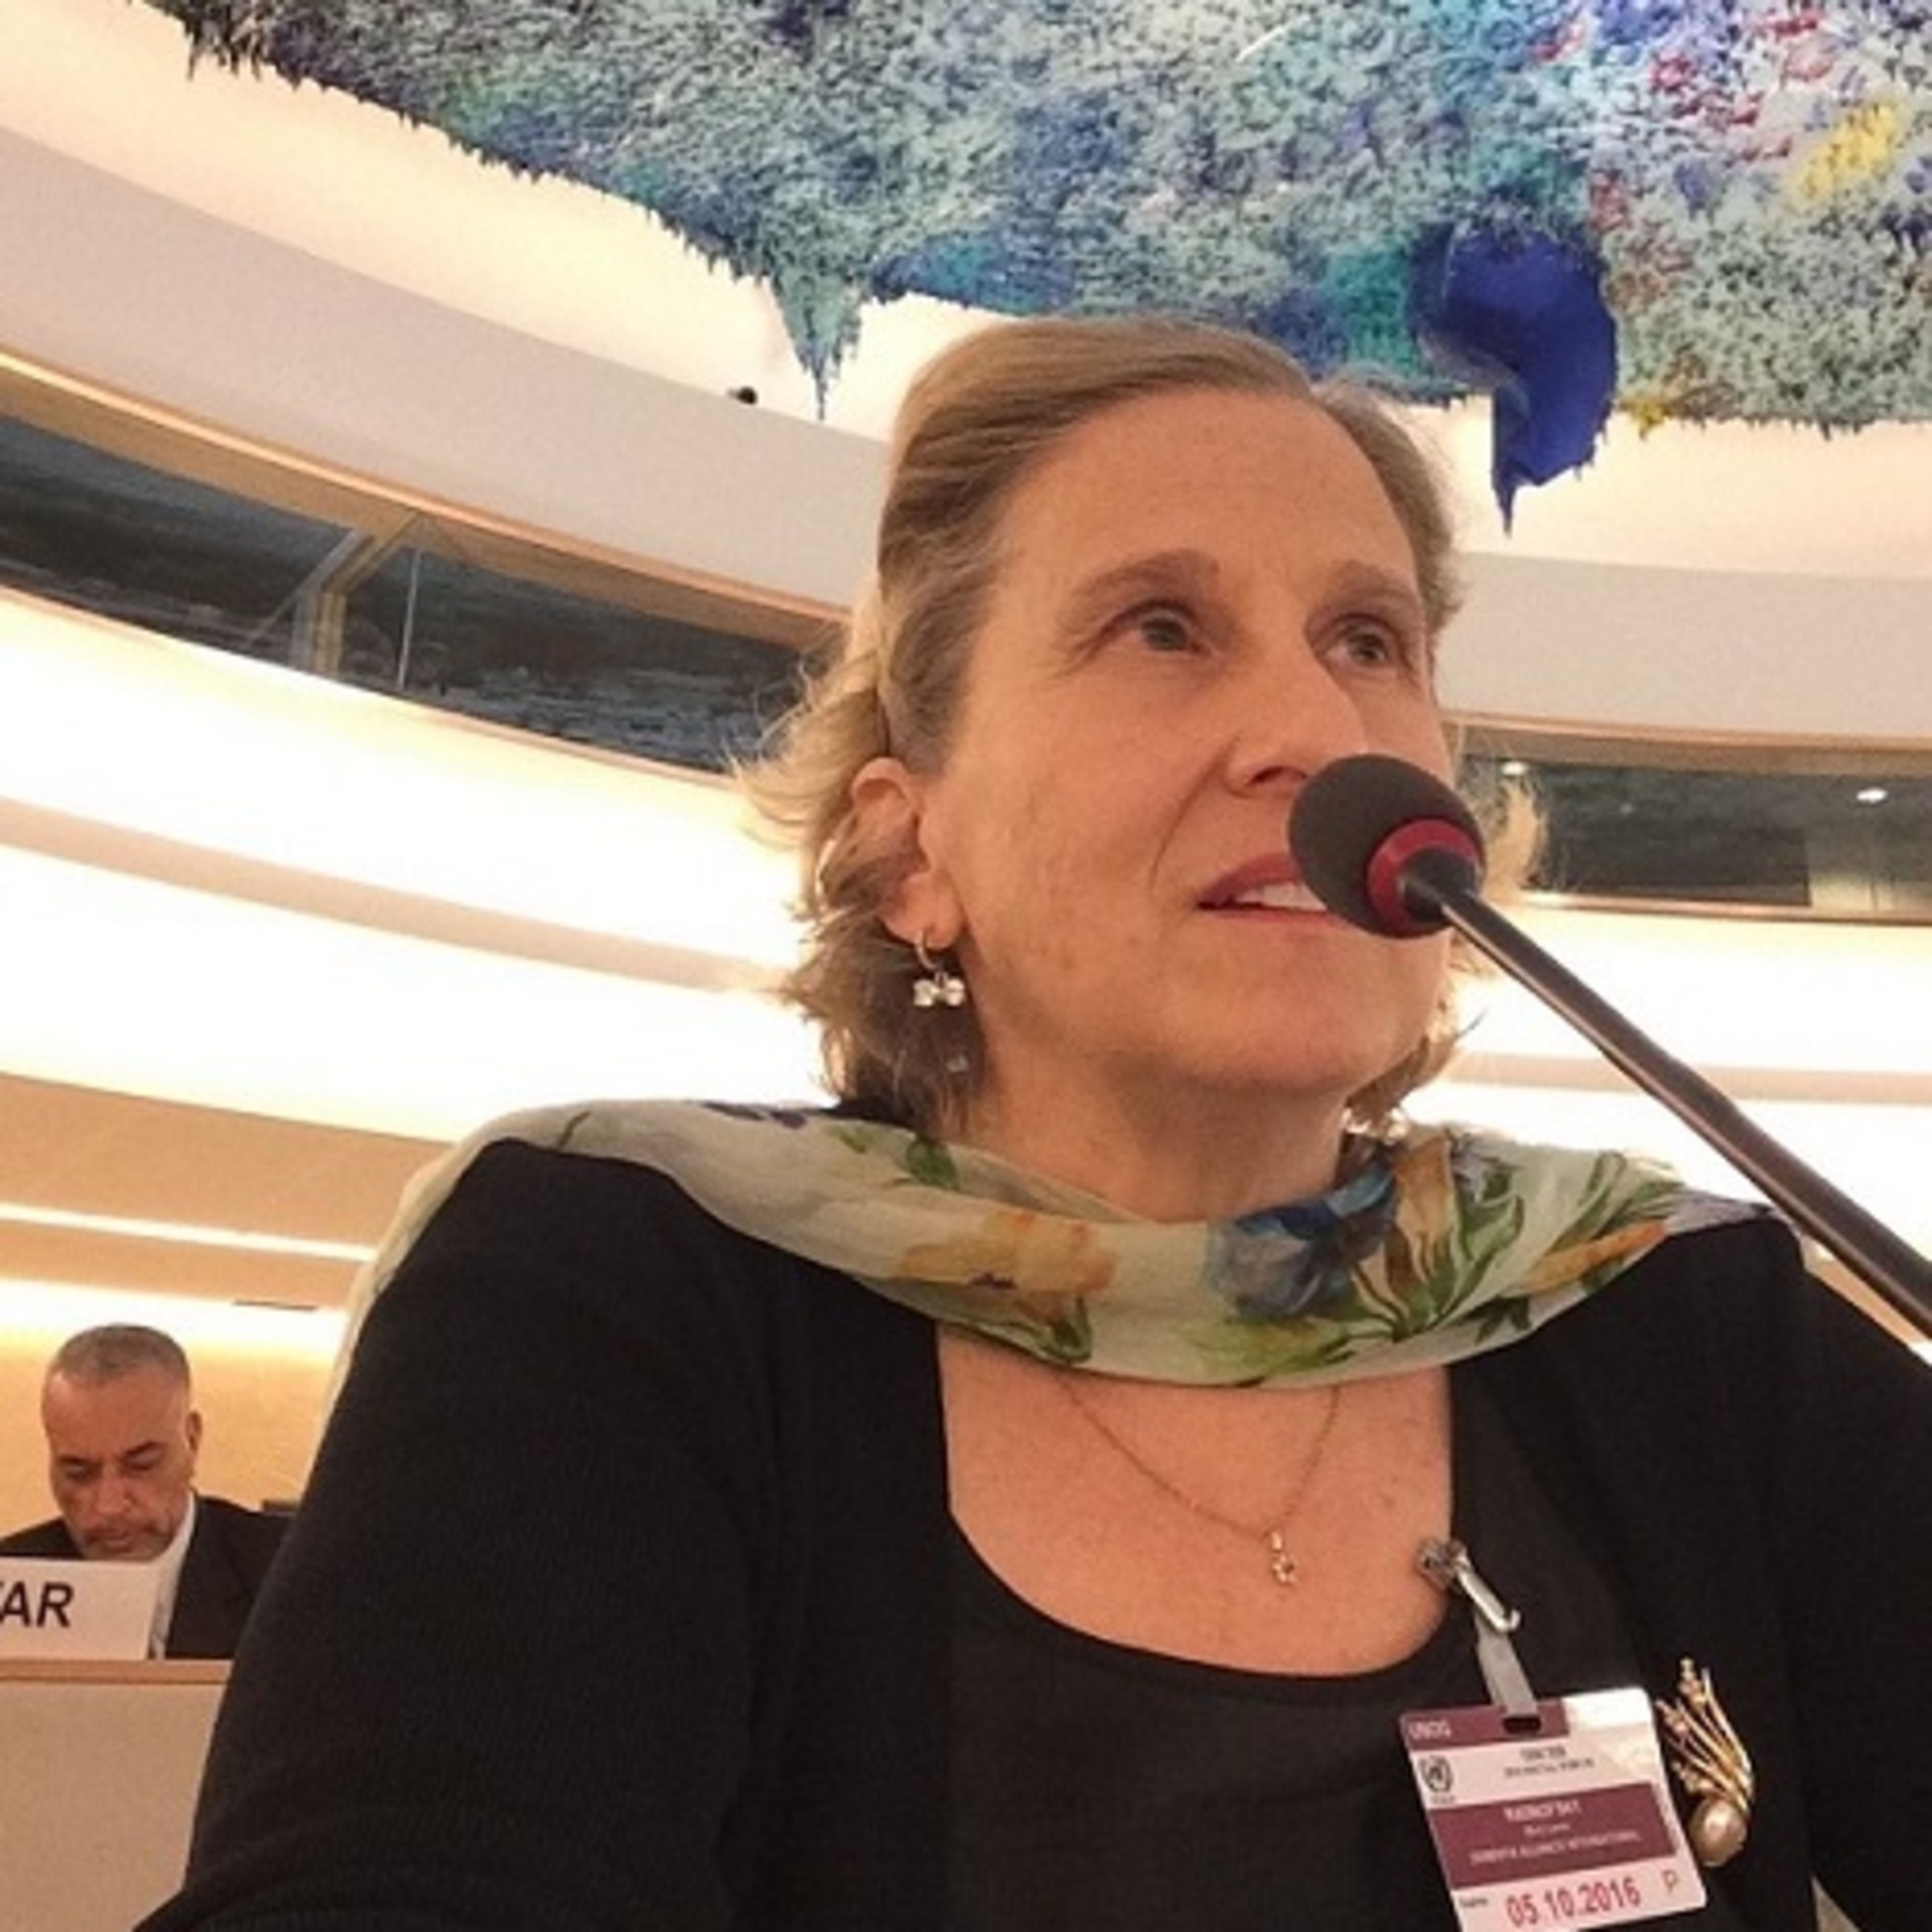 Mary with a gauzy scarf and a conference-type badge speaking into a microphone.